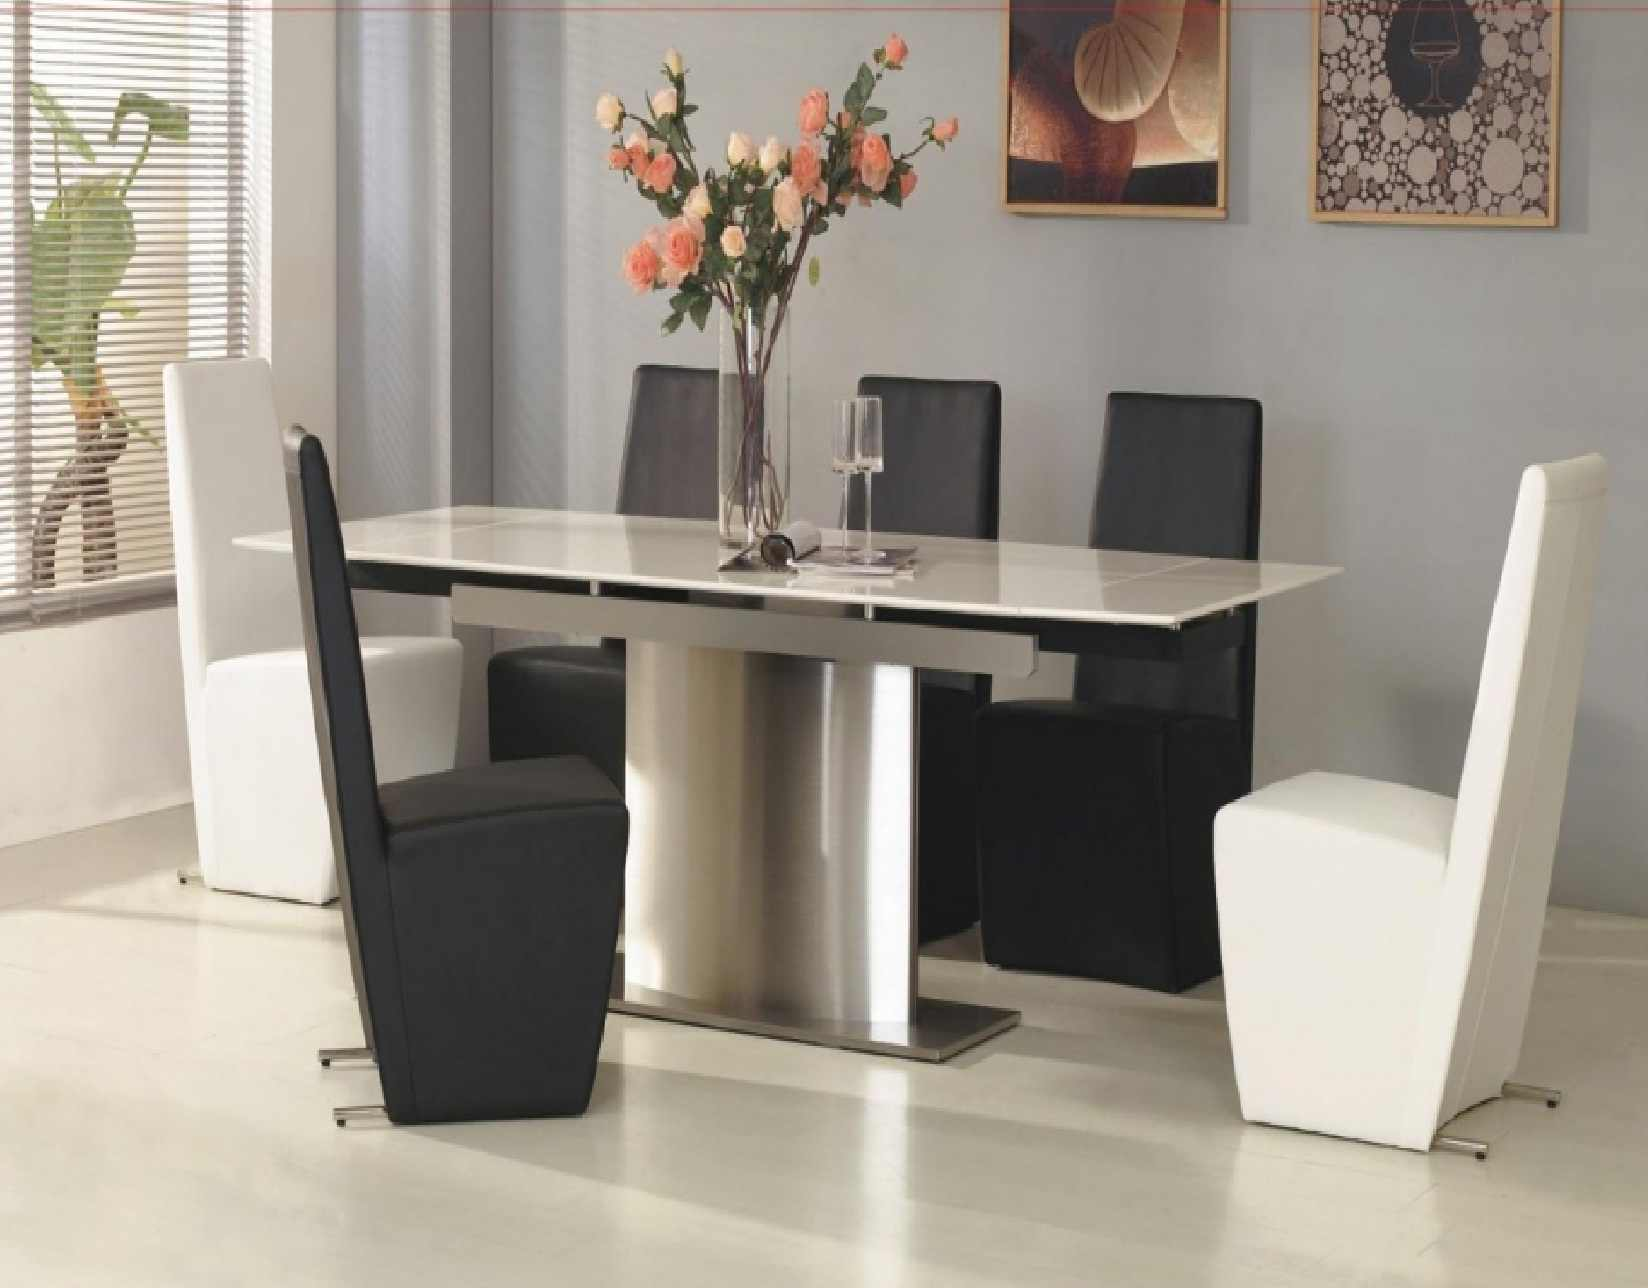 Mesmeric Interior Dining Area Using Modern Table also Black and White Chairs